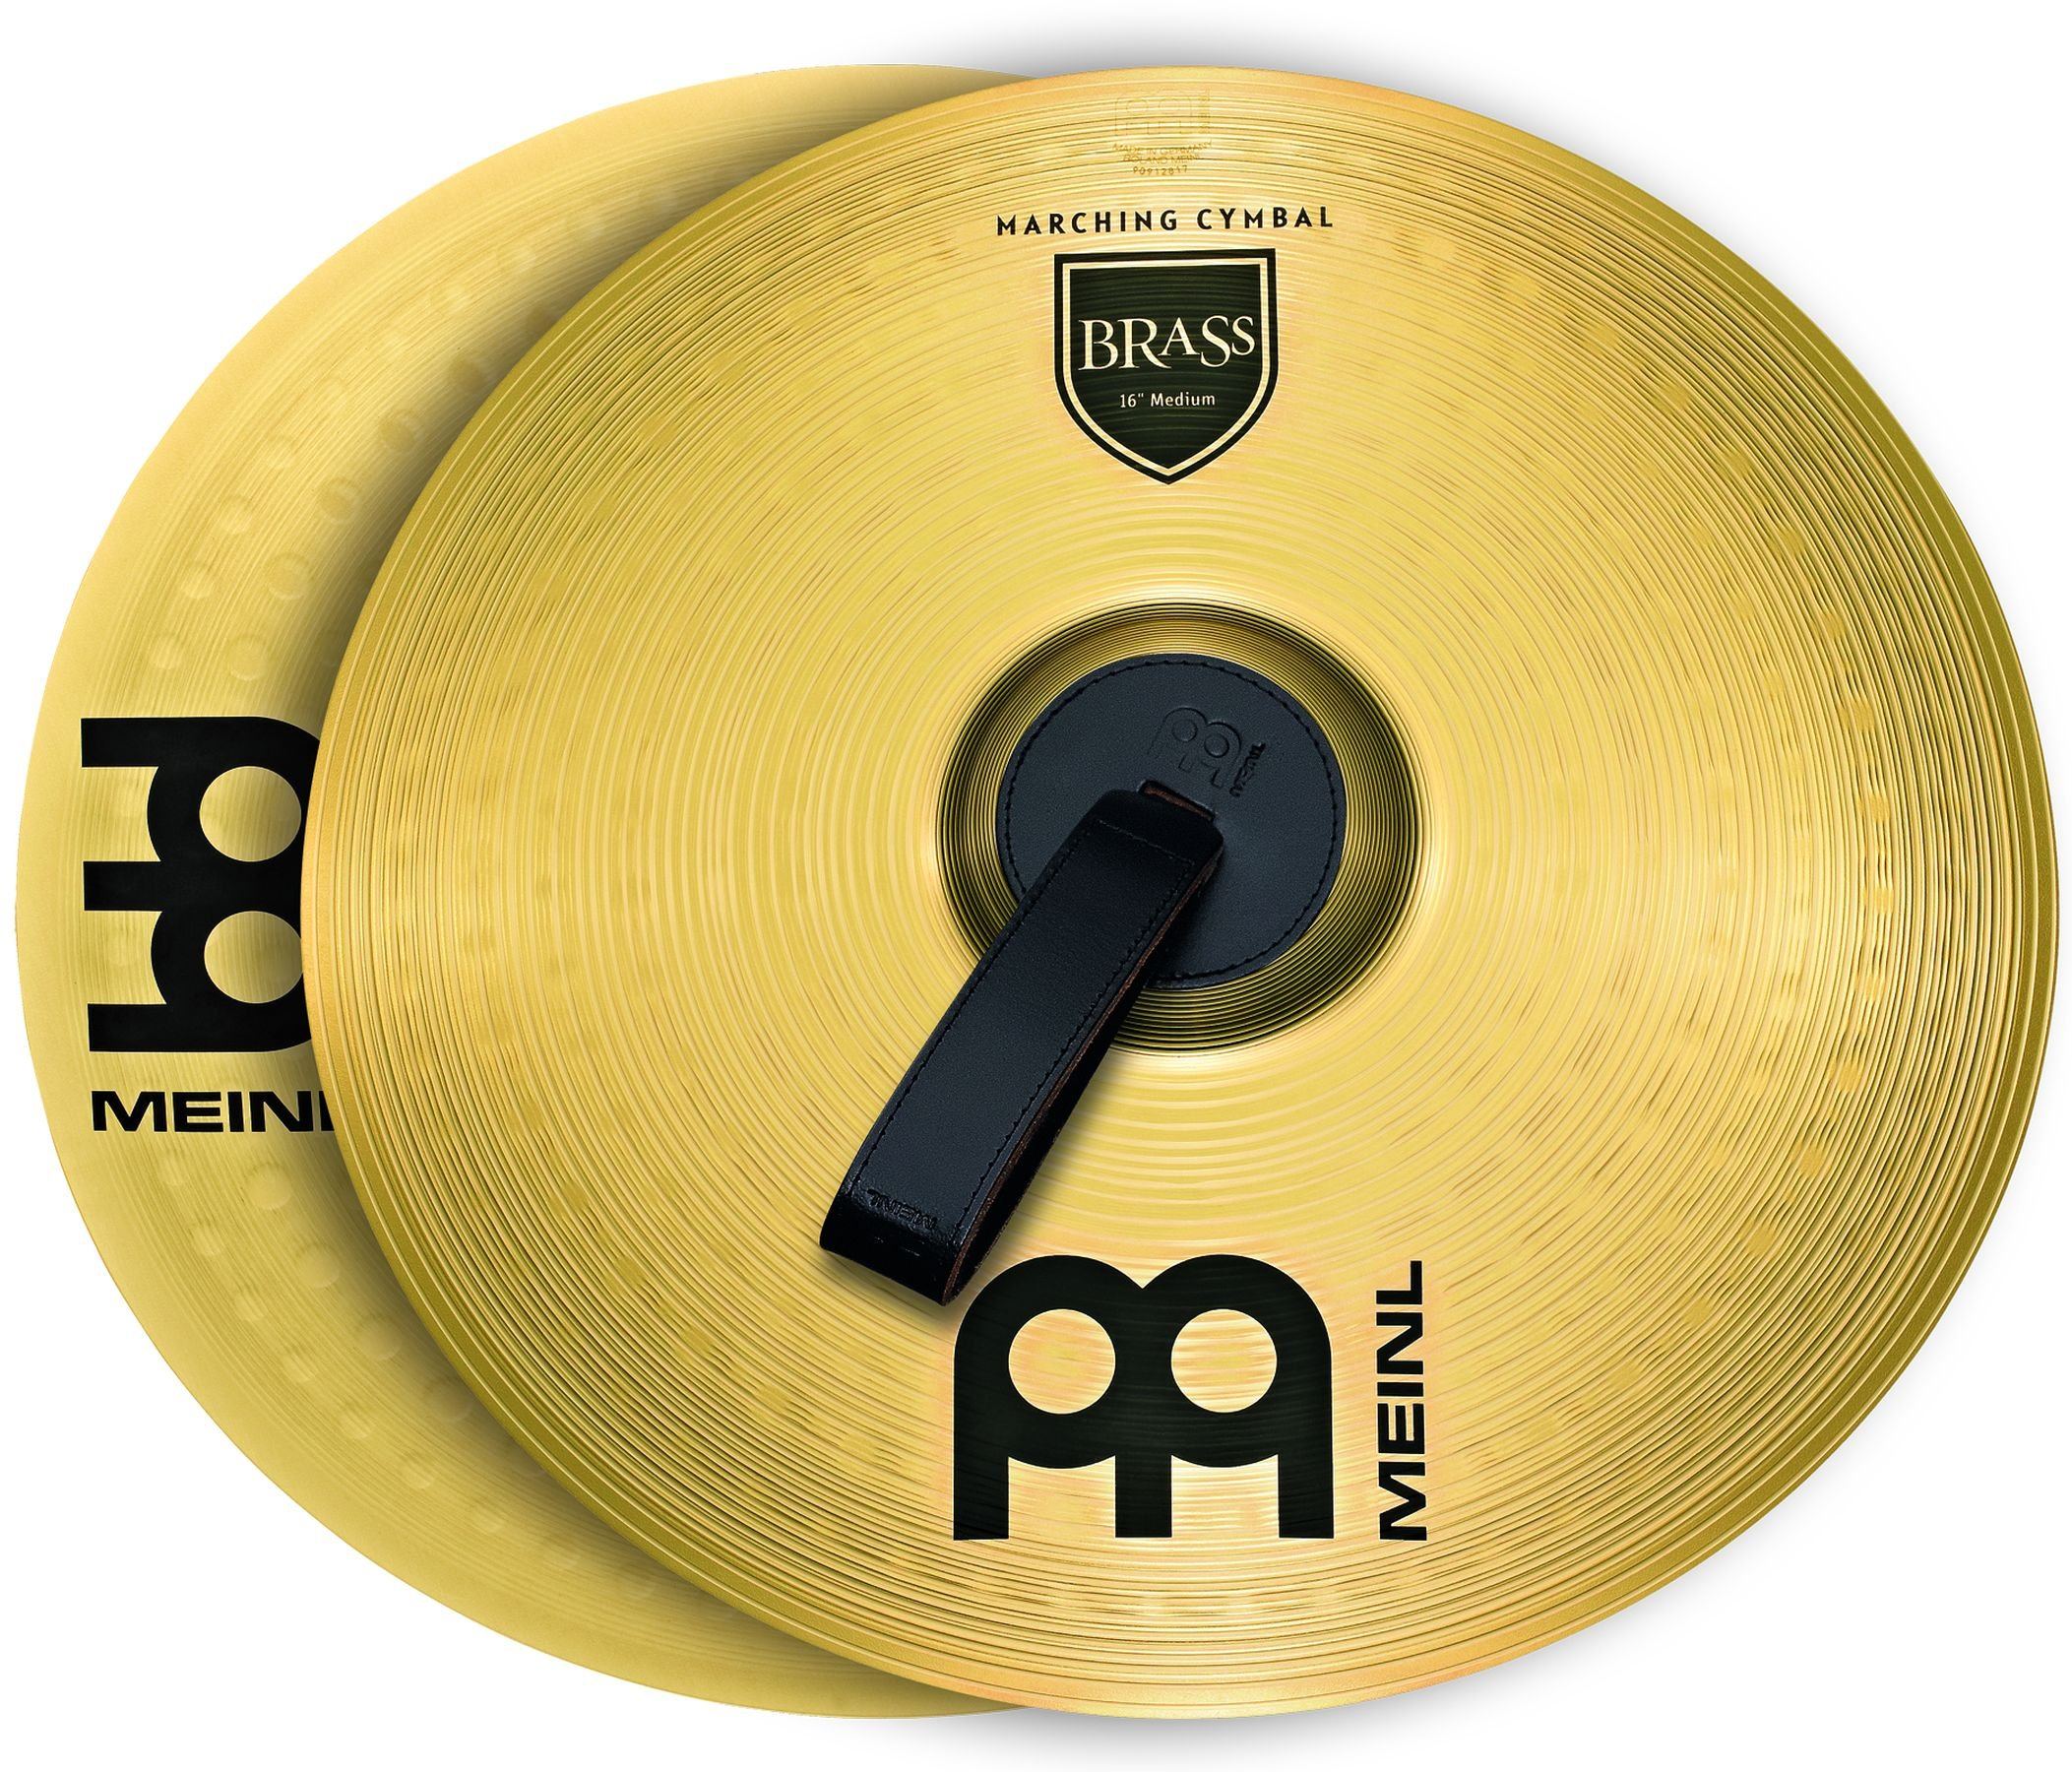 Meinl 18'' Marching Cymbal Pair with Straps - Brass Alloy Traditional Finish - Made In Germany, 2-YEAR WARRANTY (MA-BR-18M) by Meinl Cymbals